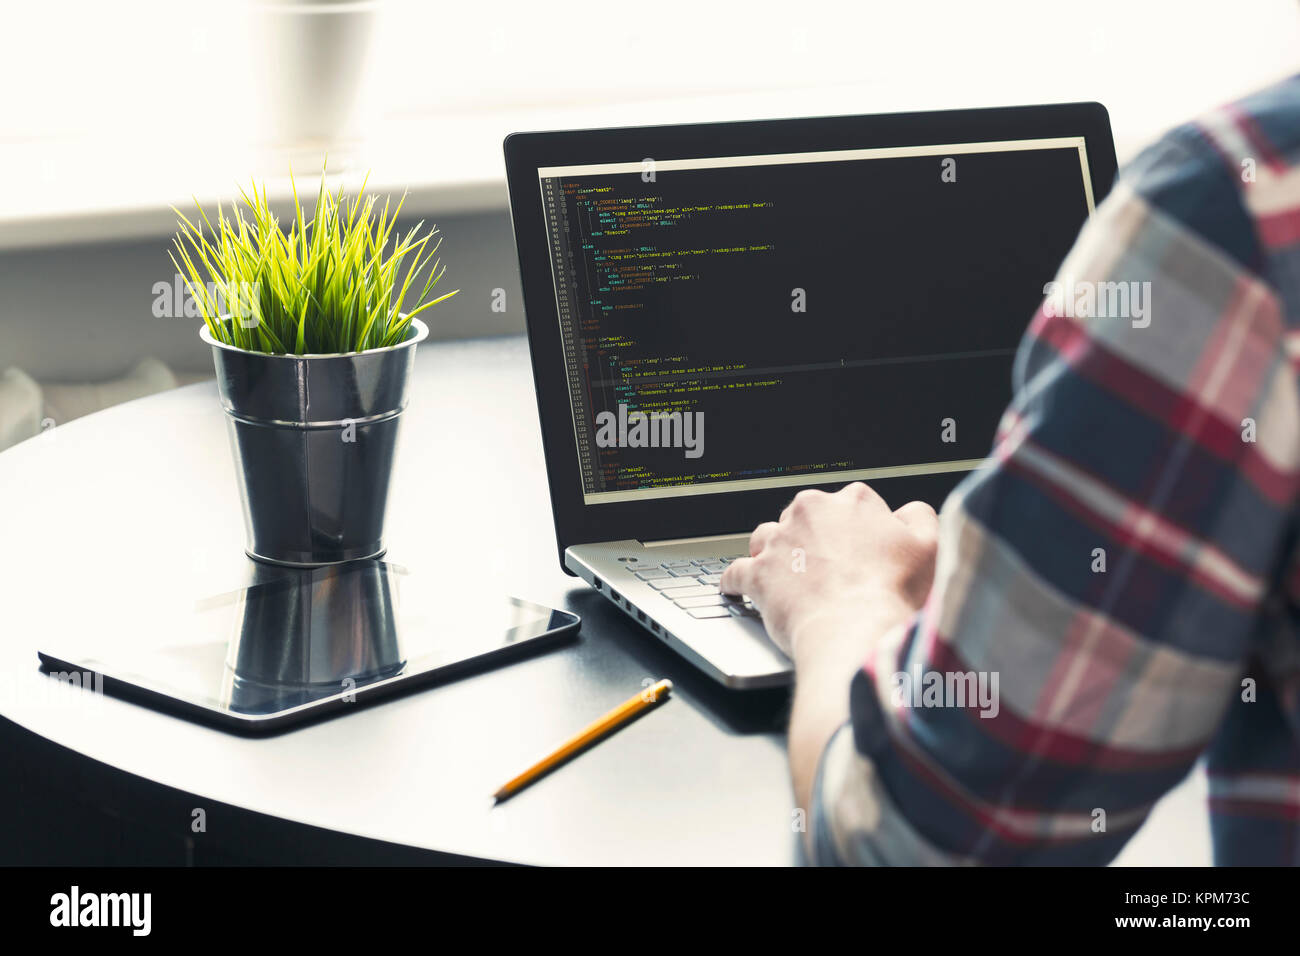 programmer working on laptop at office. focus on programming code Stock Photo